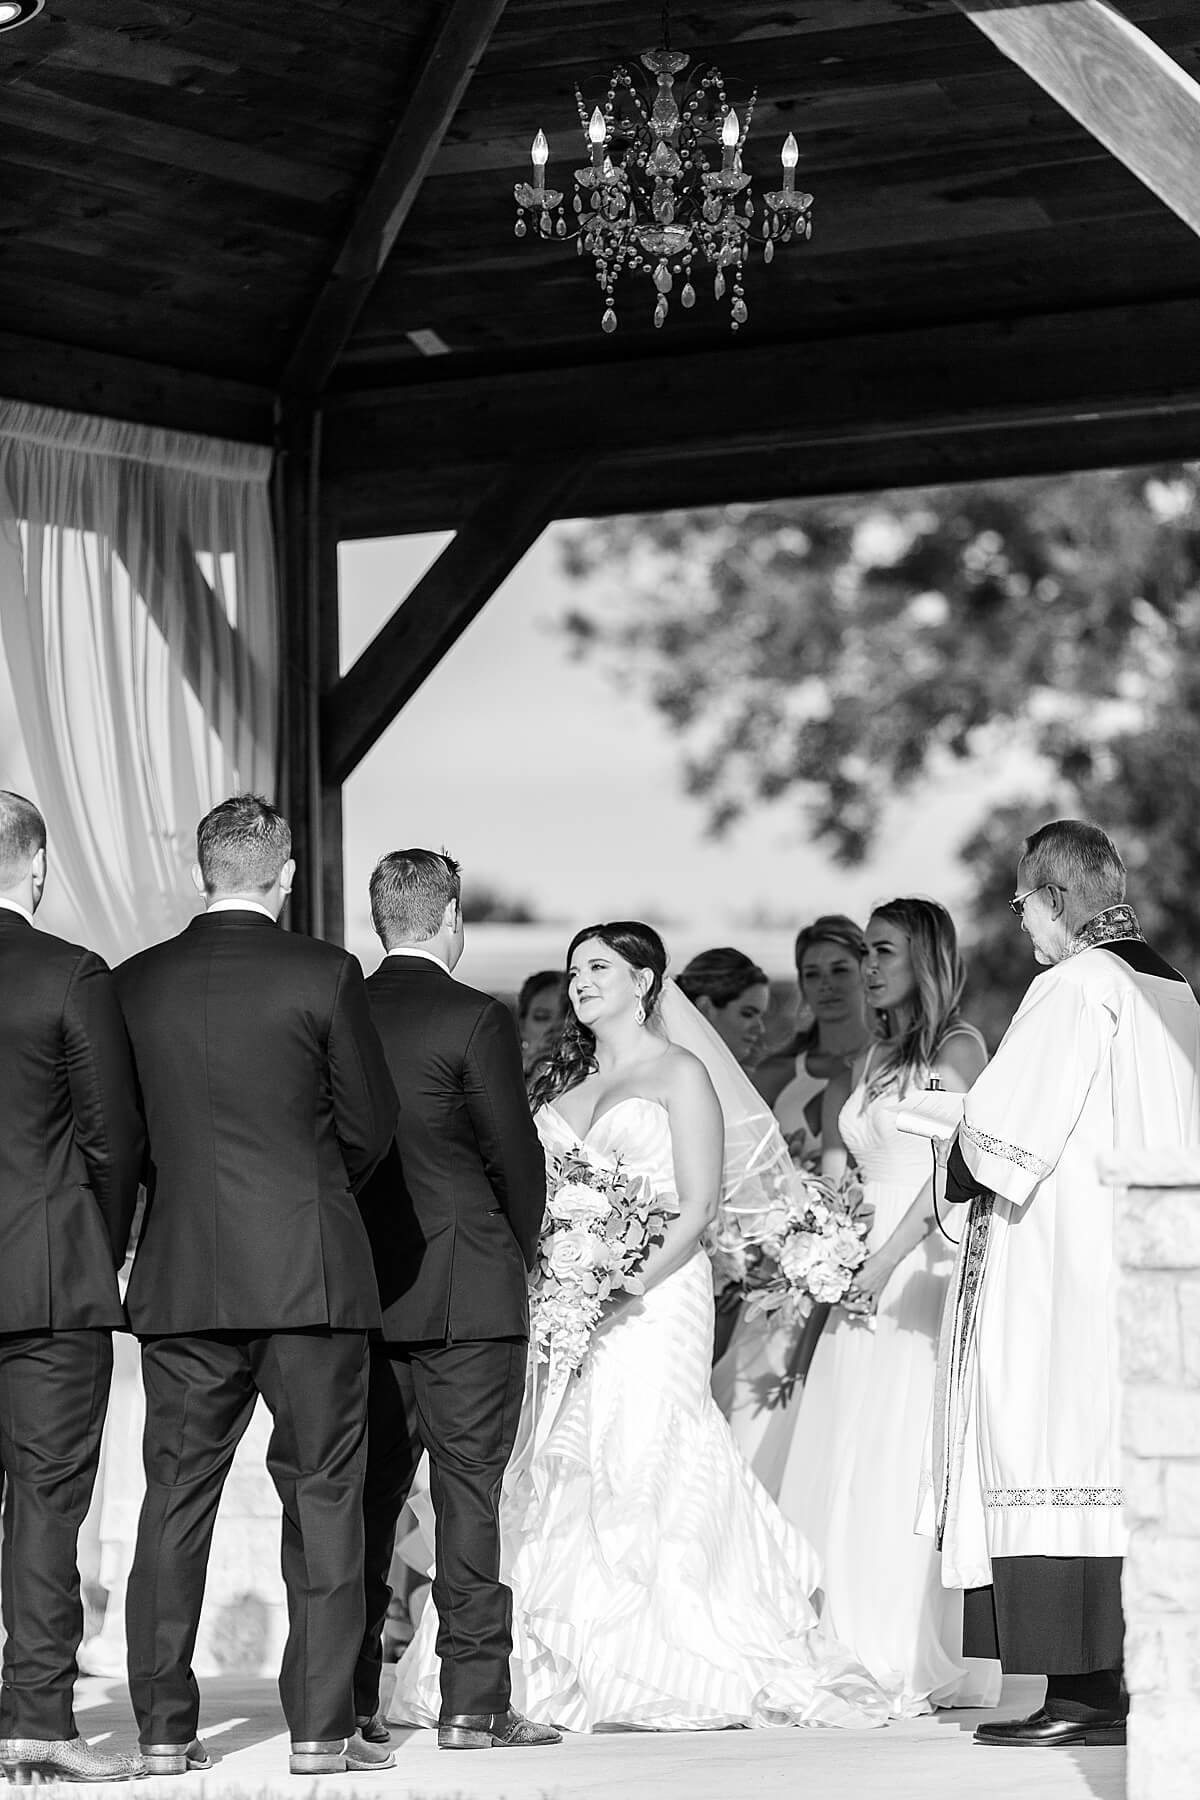 emerys-buffalo-creek-wedding-alicia-yarrish-photography_0097